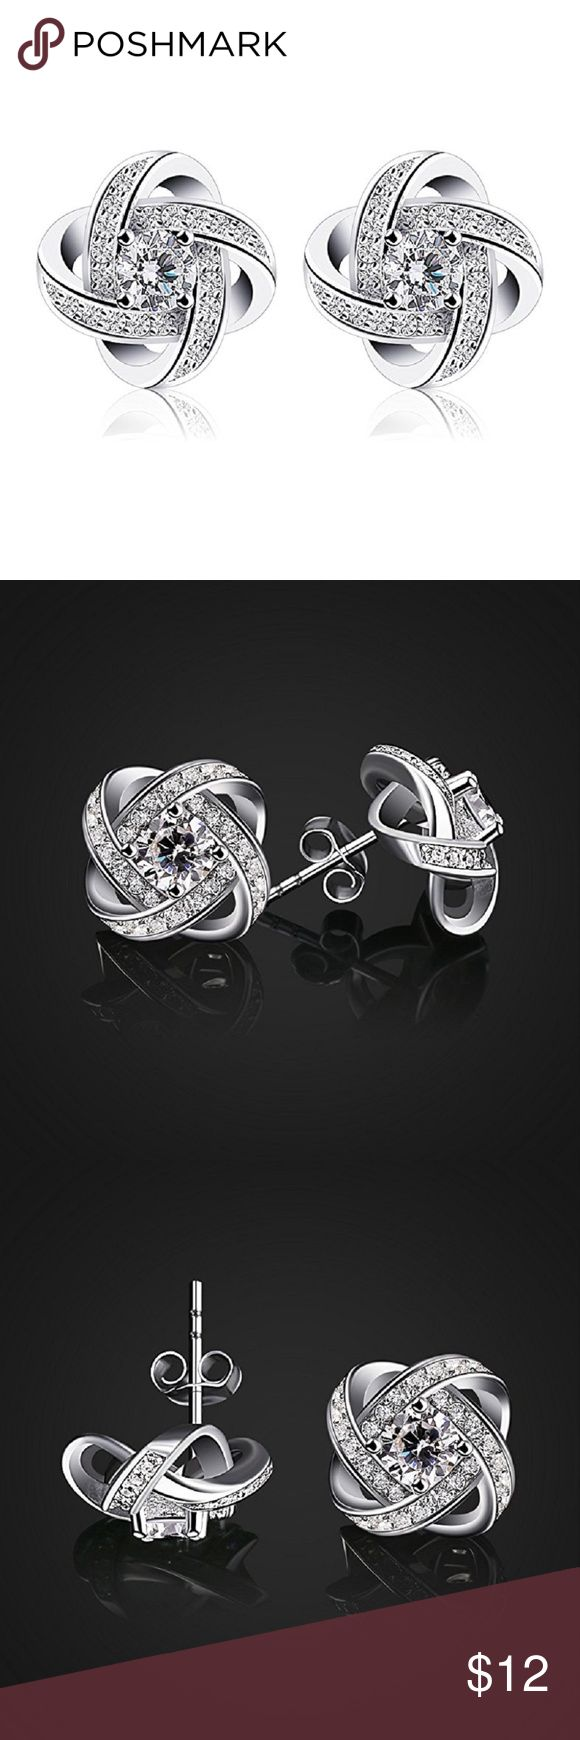 ❤️❤️CZ Gem stone Stud Earrings❤️❤️ ❤️❤️Only Today Buy any two Jewelry Get the 3rd one free❤️❤️ Prices will depend the highest two- For example ' if you pick jewelry $9,$10 and $8, the prices will be 9+ 10= 19 and you will get the 8 dollars jewelry free, limited in stock, today only ❤️❤️ Jewelry Earrings